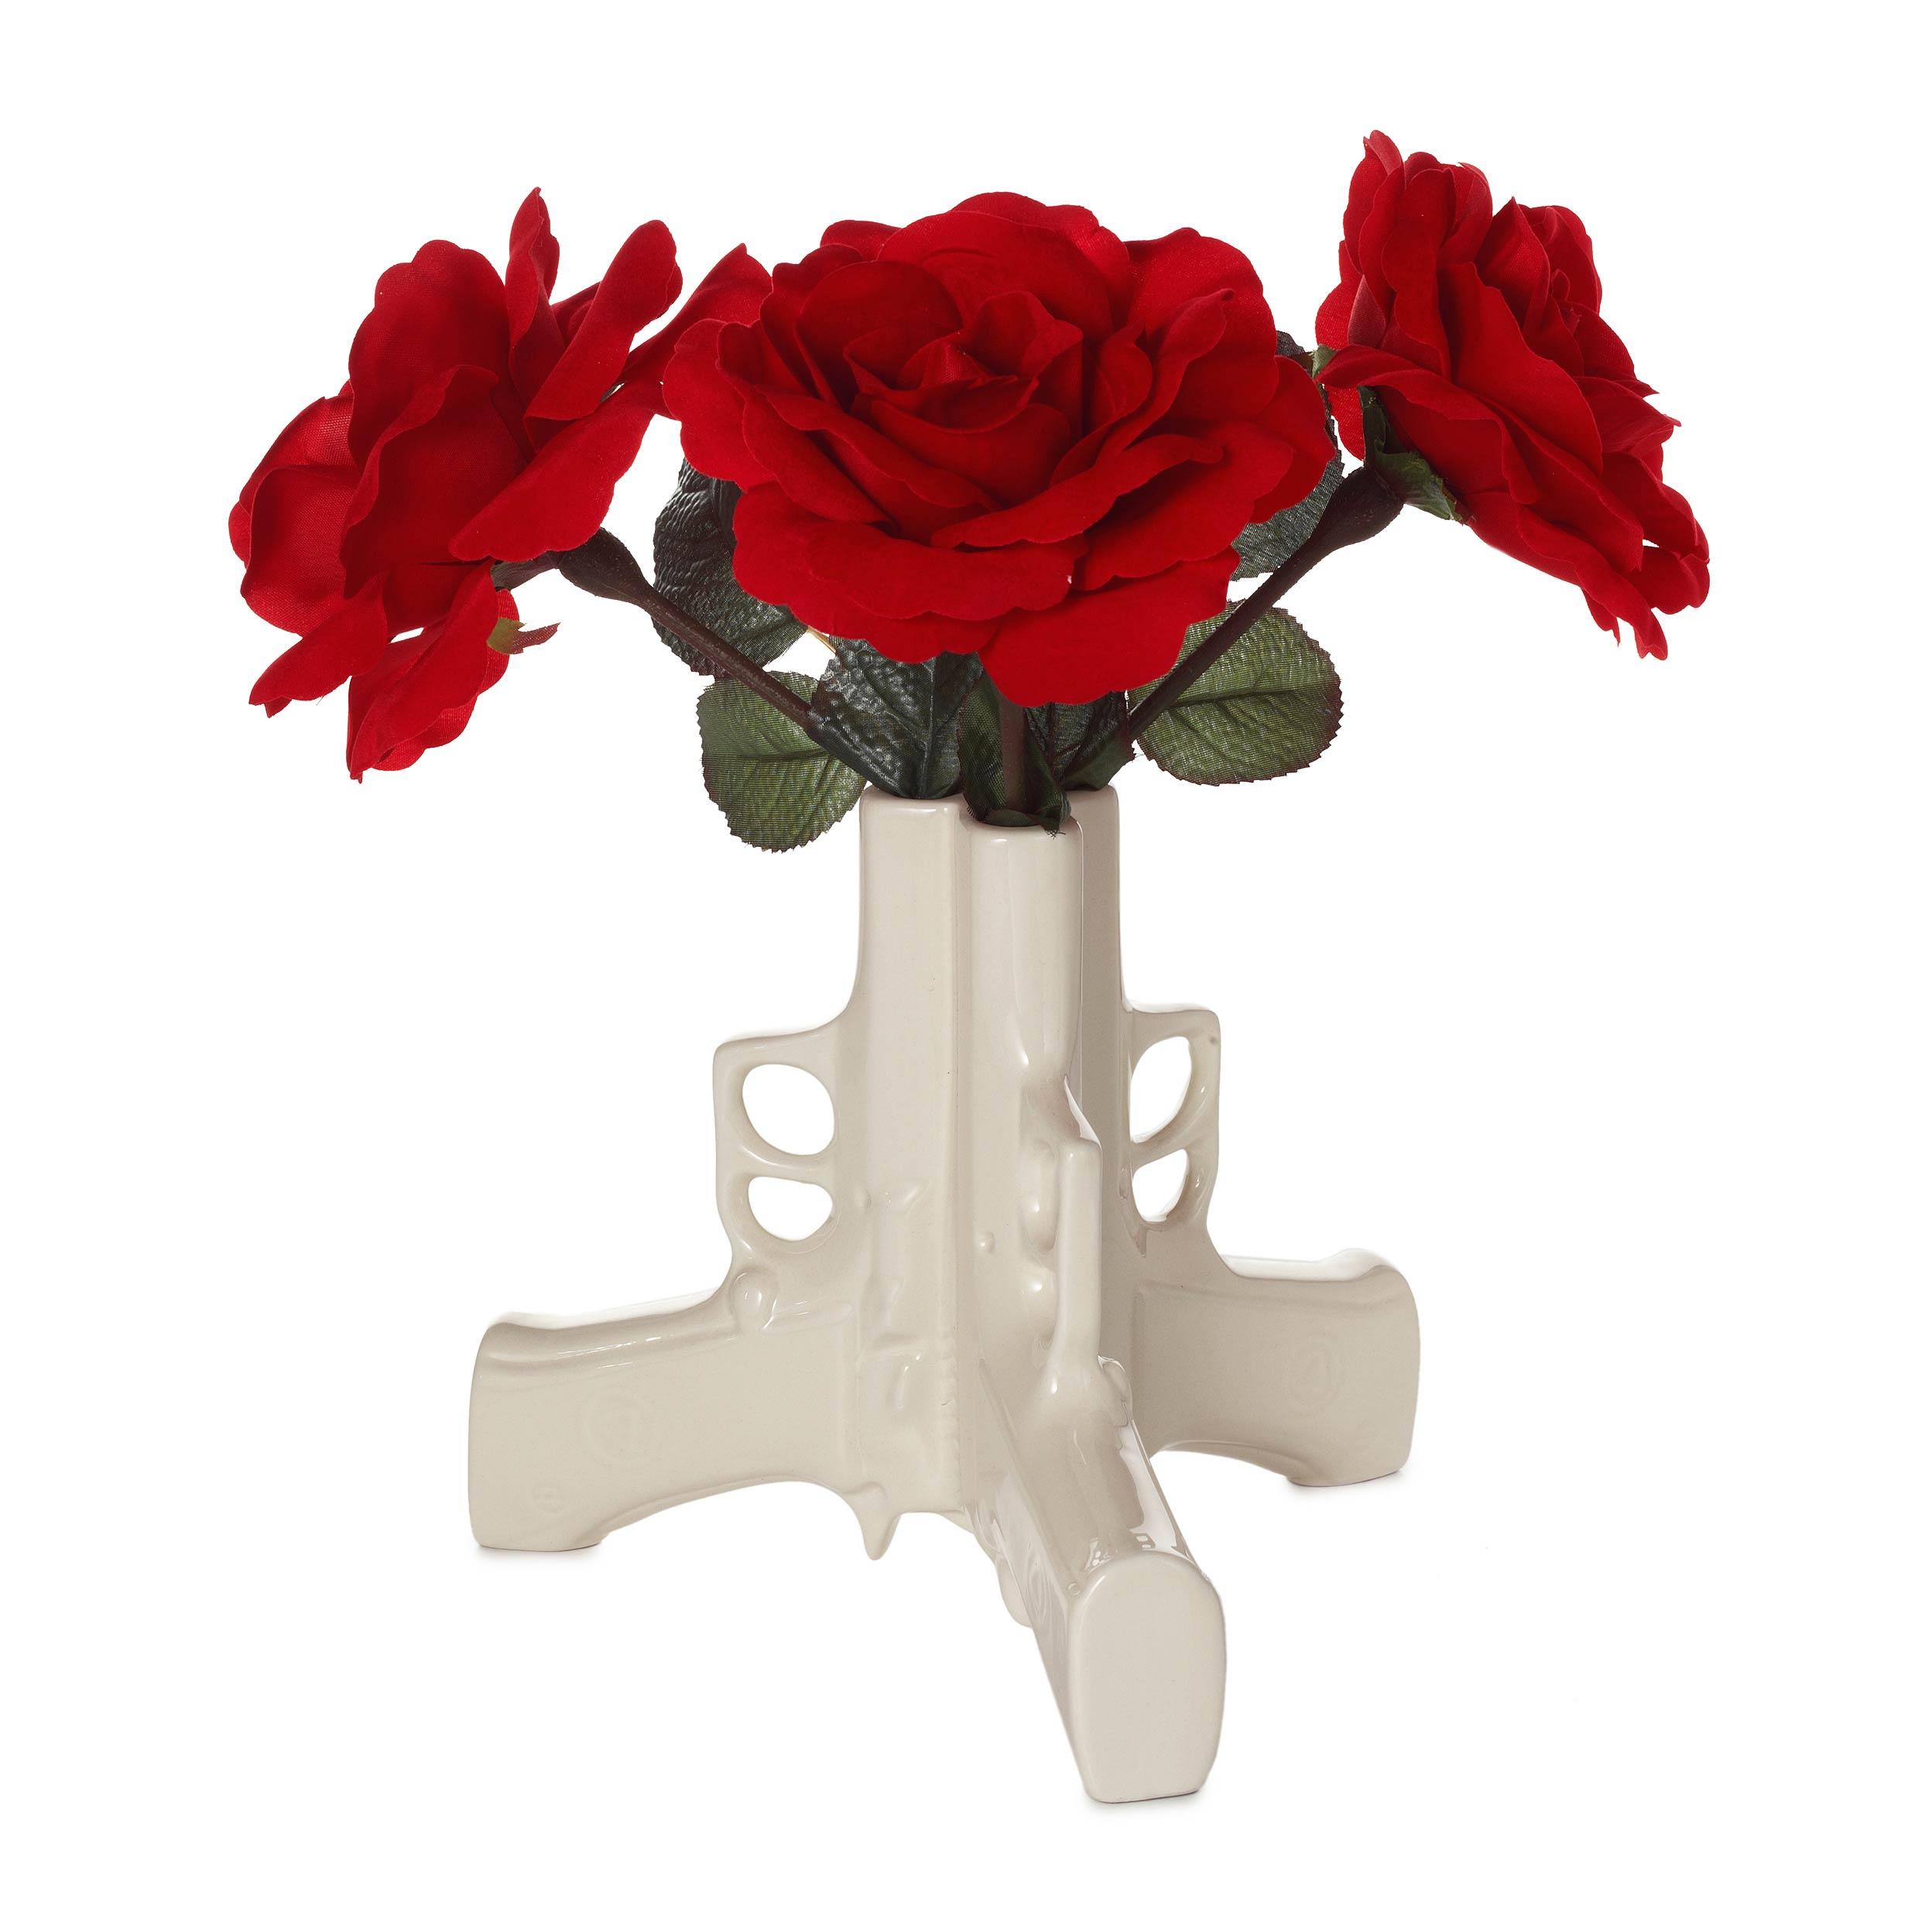 Gun flower vase ceramic pistol vase uses weapon to make peaceful gun flower vase 1 thumbnail reviewsmspy